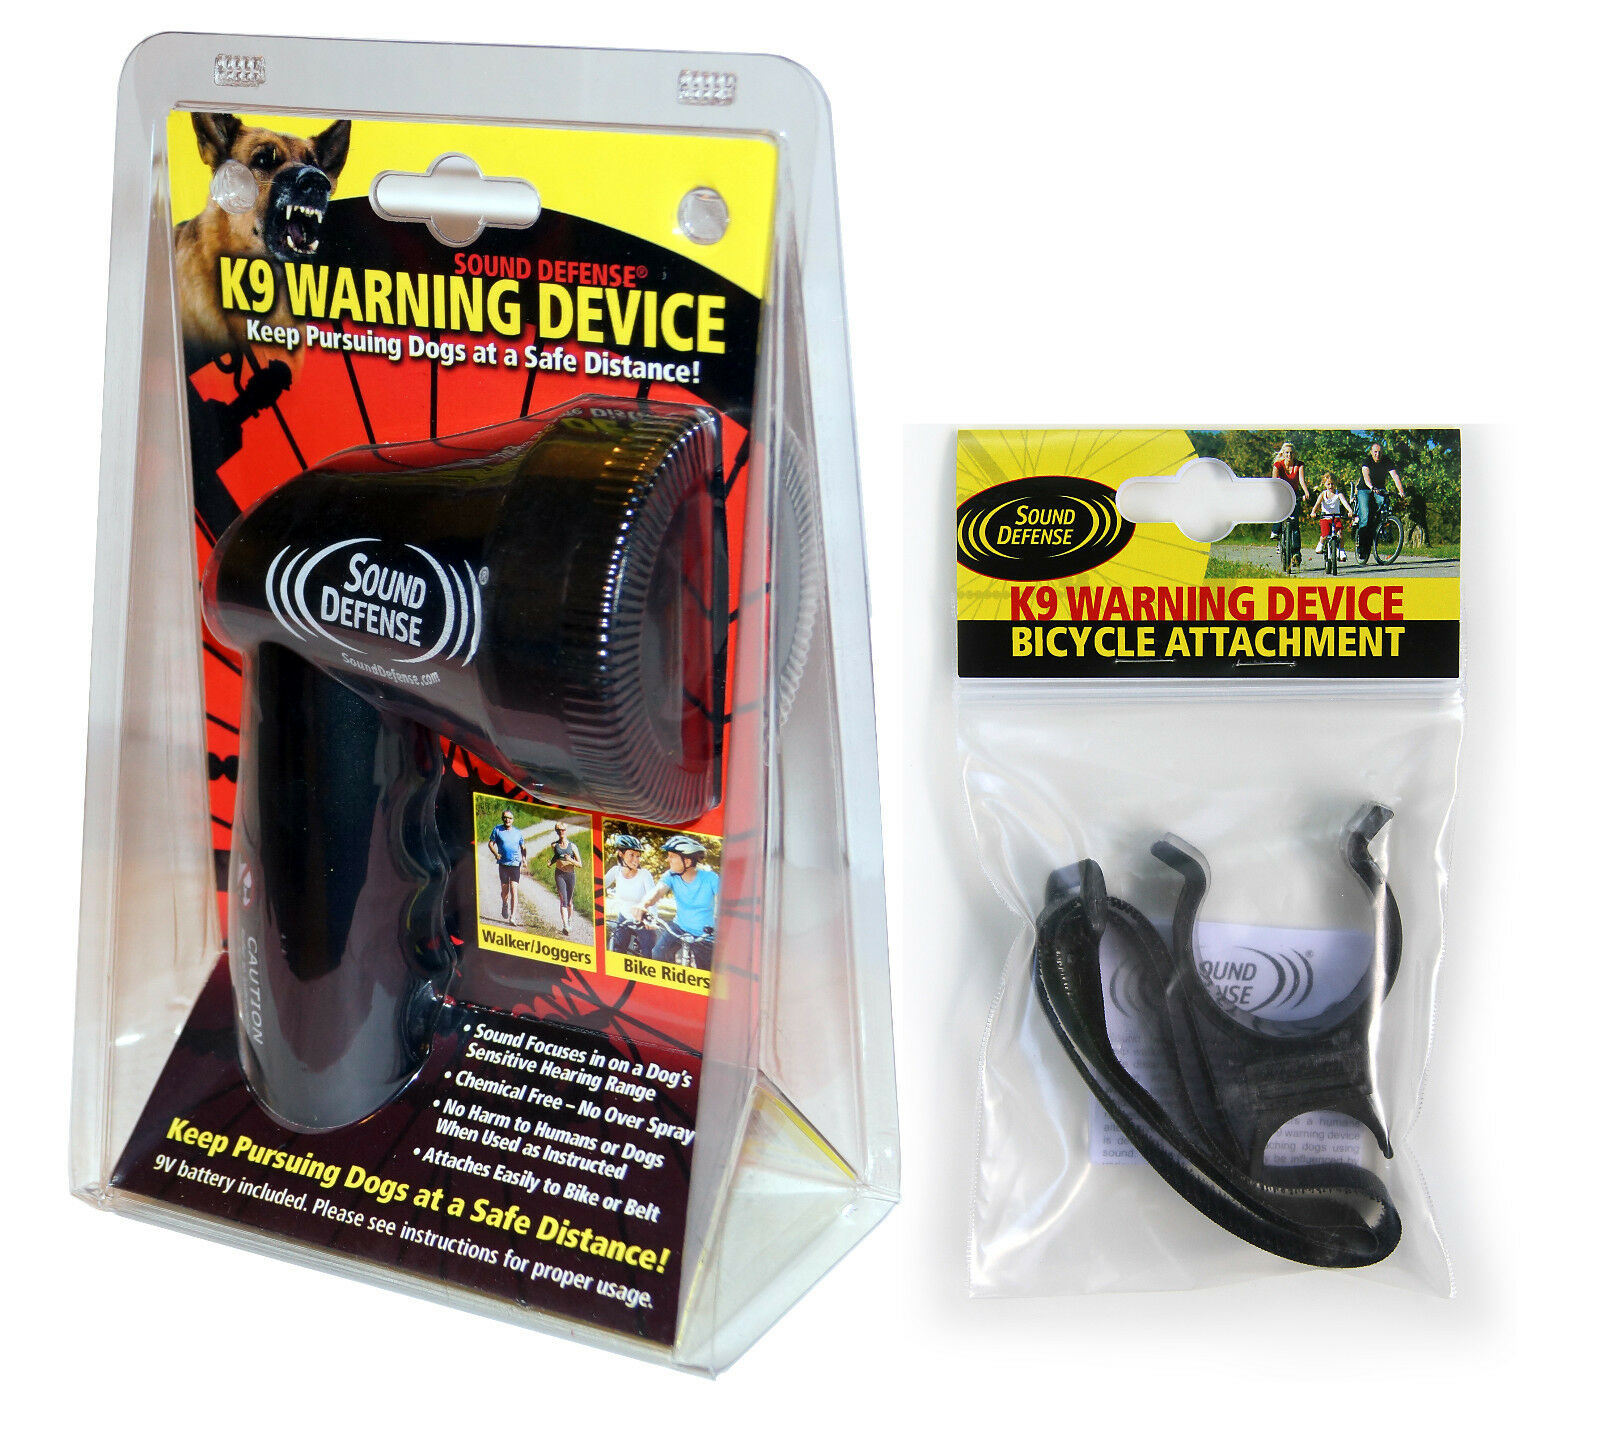 Dog Horn Deterrent Repellent and Loud Bike Horn - Bike Accessories Set